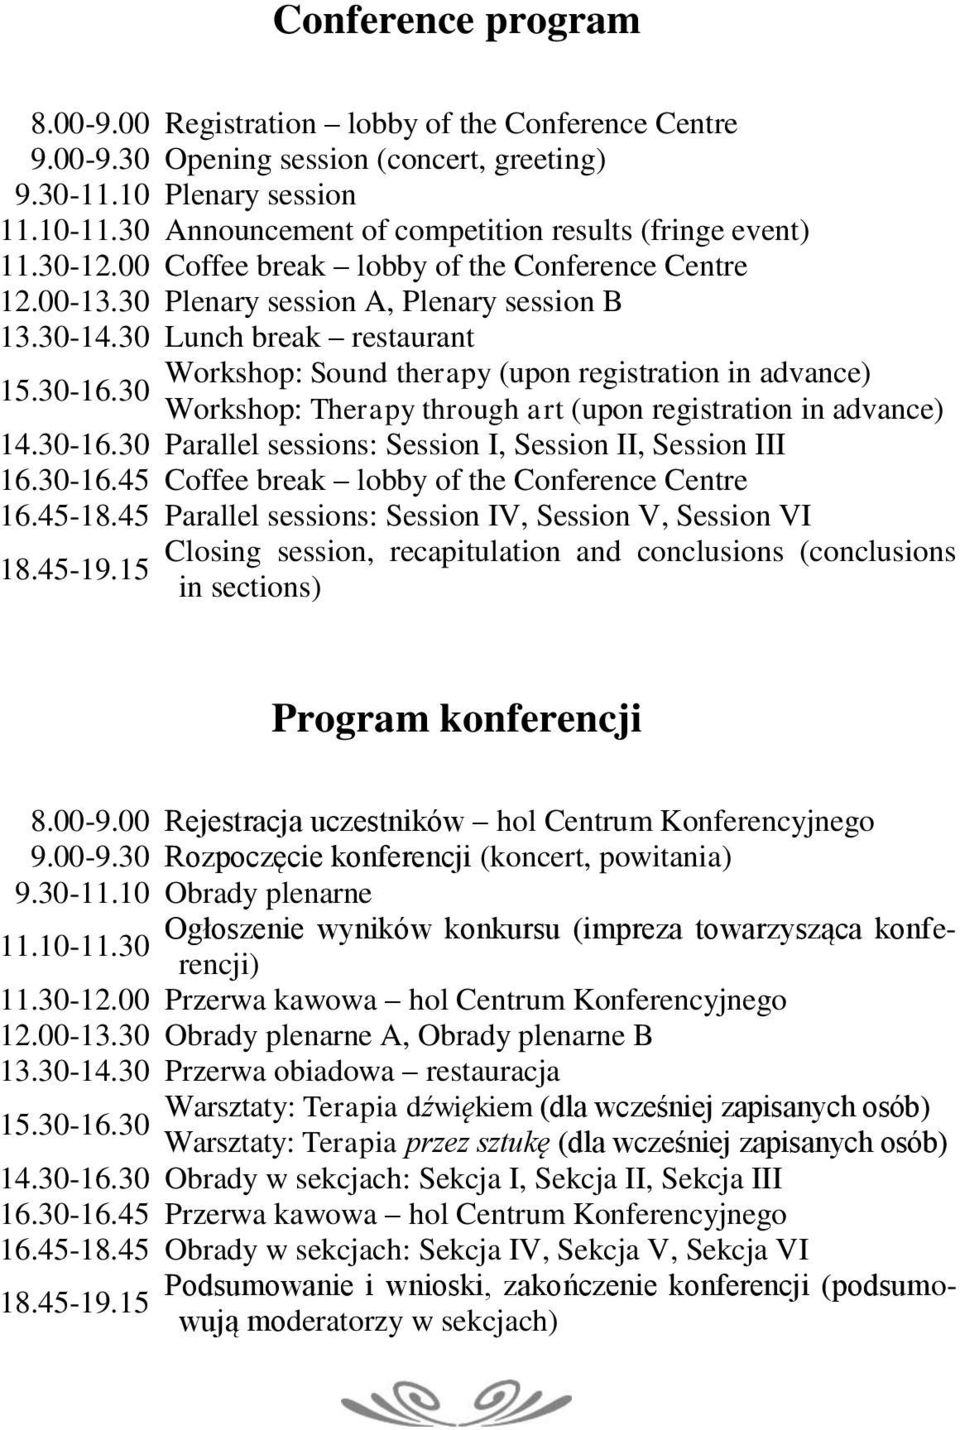 30-16.30 Workshop: Sound therapy (upon registration in advance) Workshop: Therapy through art (upon registration in advance) 14.30-16.30 Parallel sessions: Session I, Session II, Session III 16.30-16.45 Coffee break lobby of the Conference Centre 16.